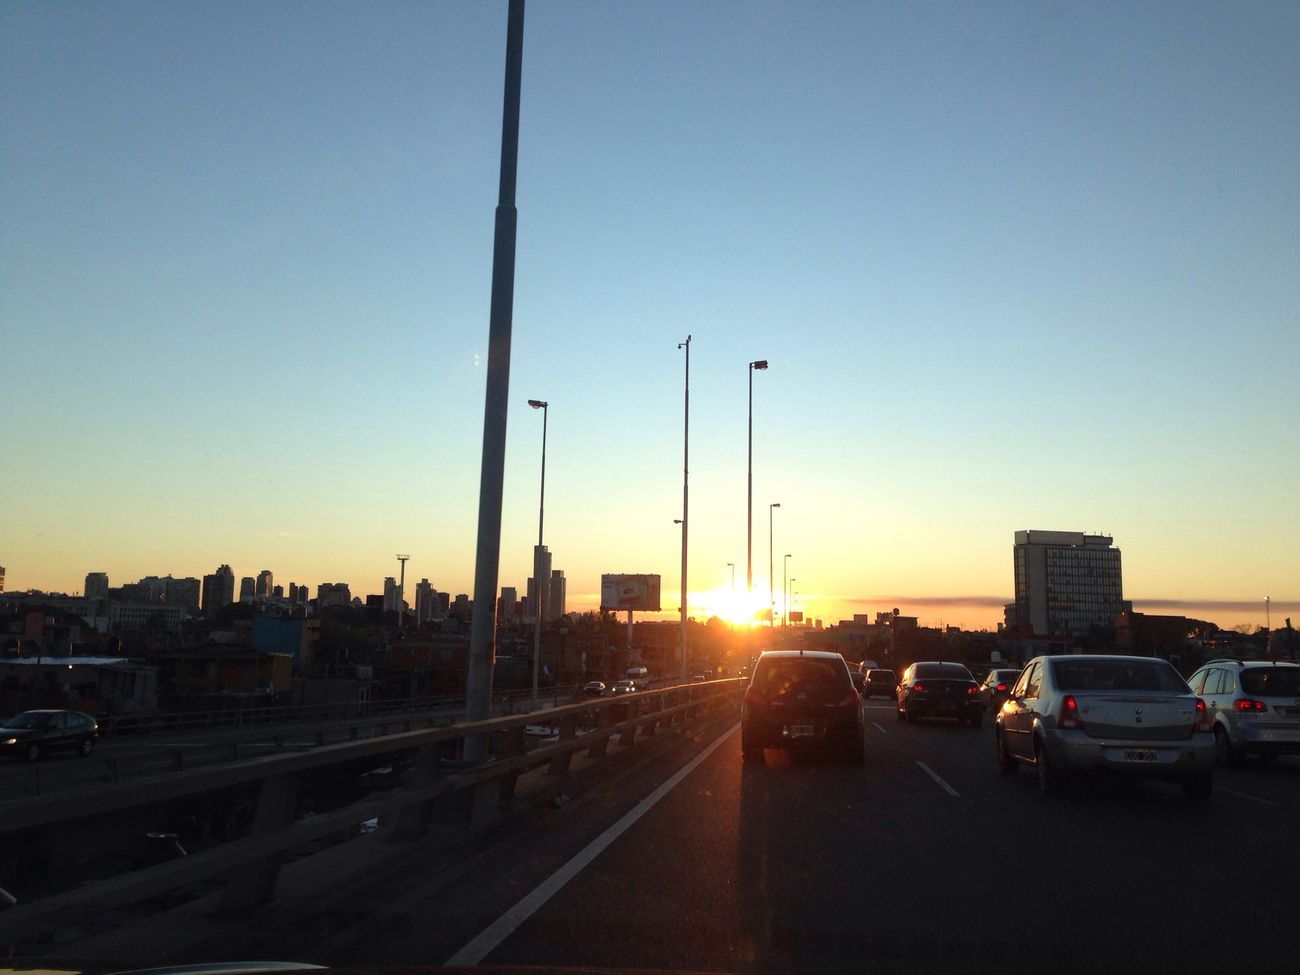 Sunset On The Road With BlaBlaCar 16.6.14